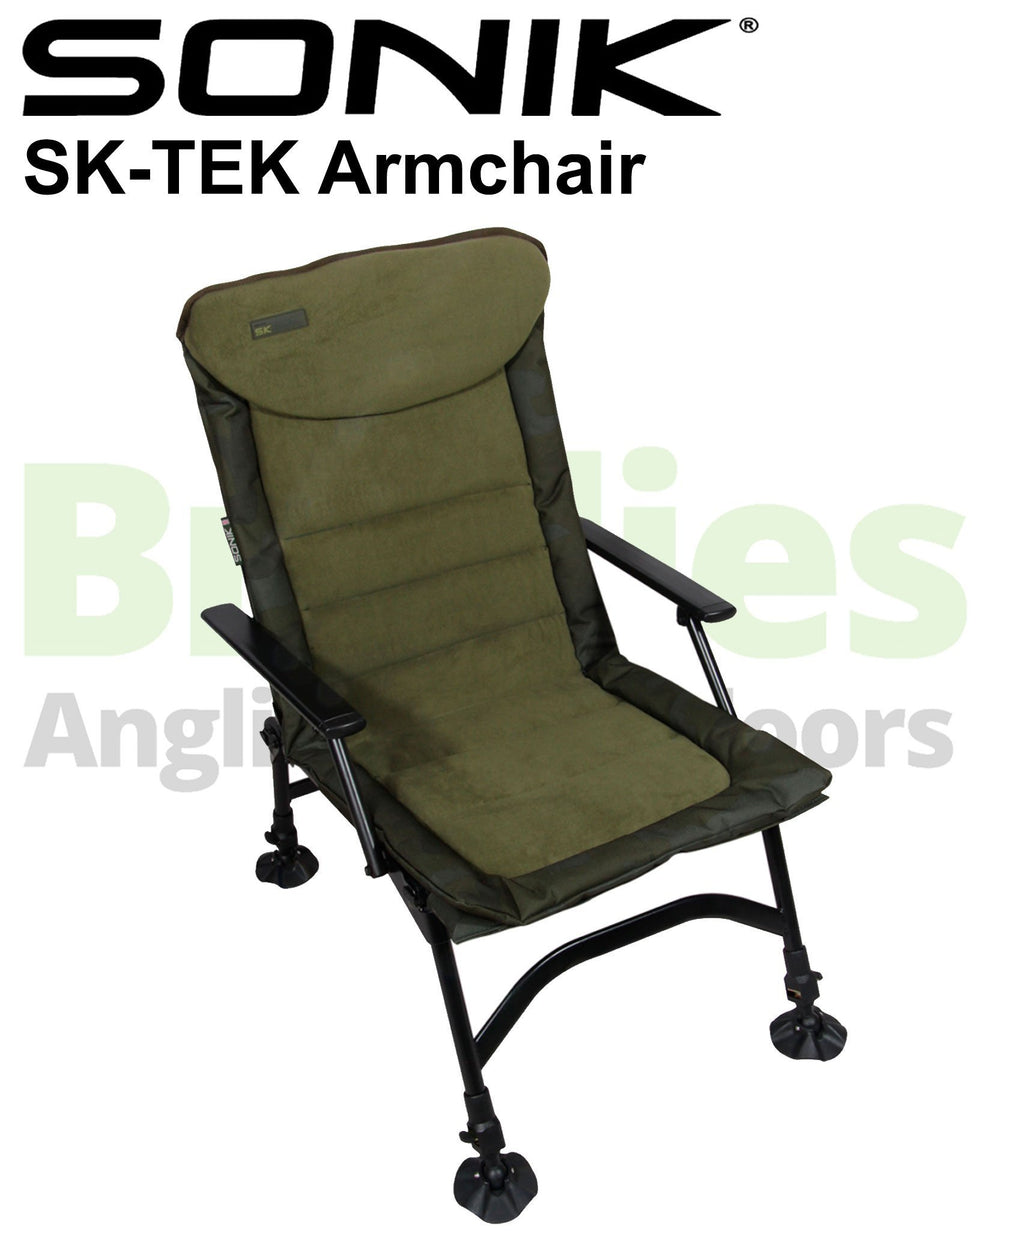 Sonik SK-TEK Armchair-Sonik-Brodies Angling & Outdoors